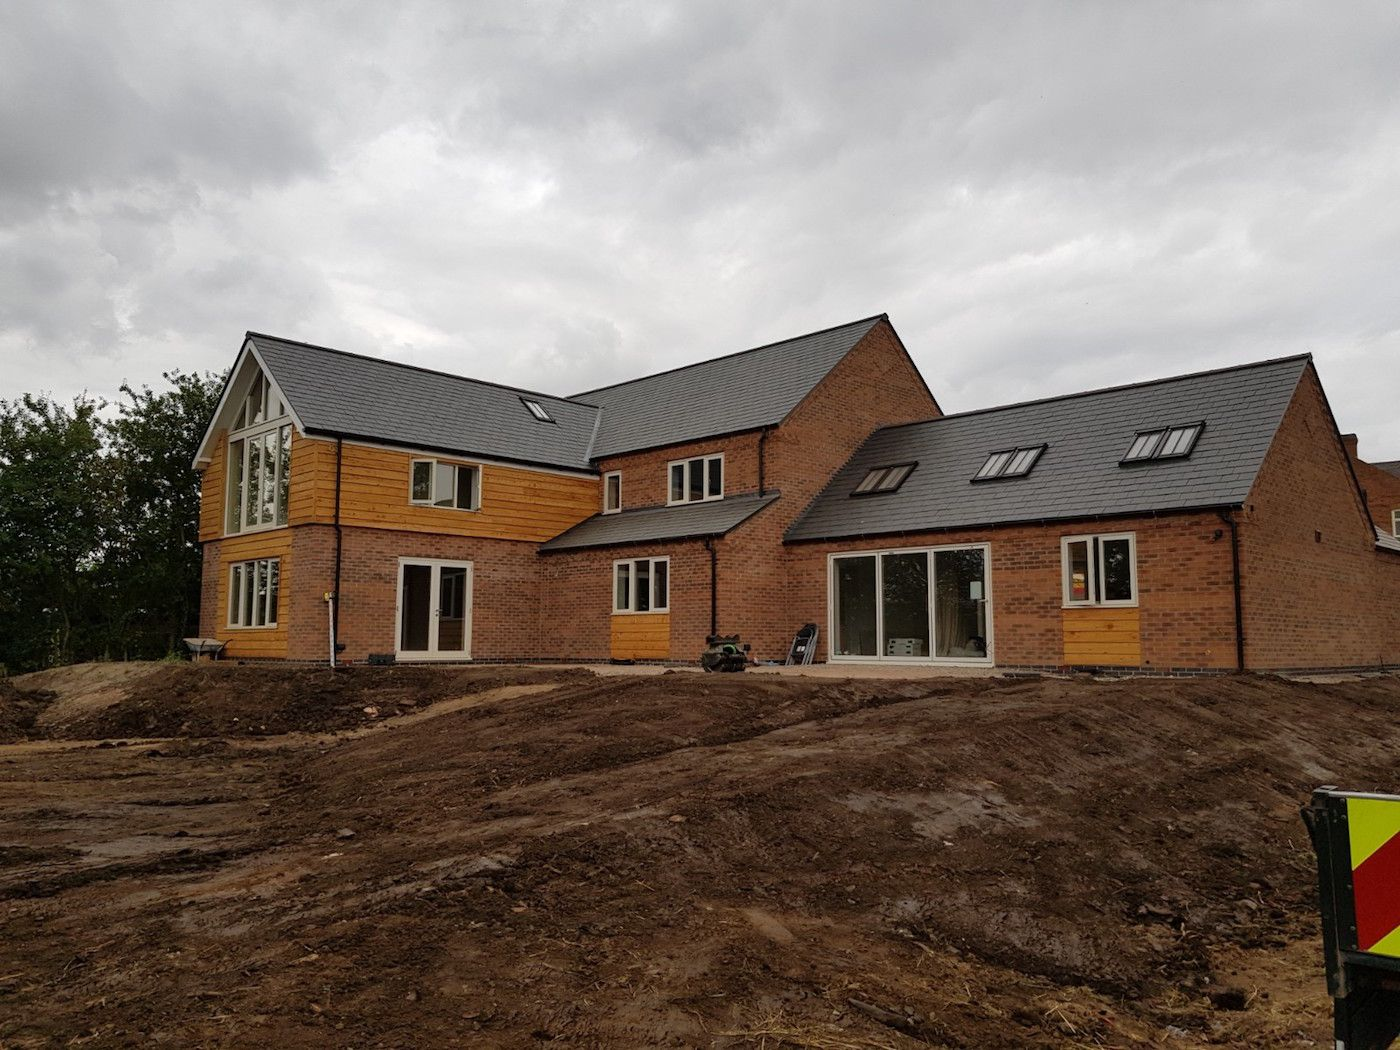 Rear of the new build